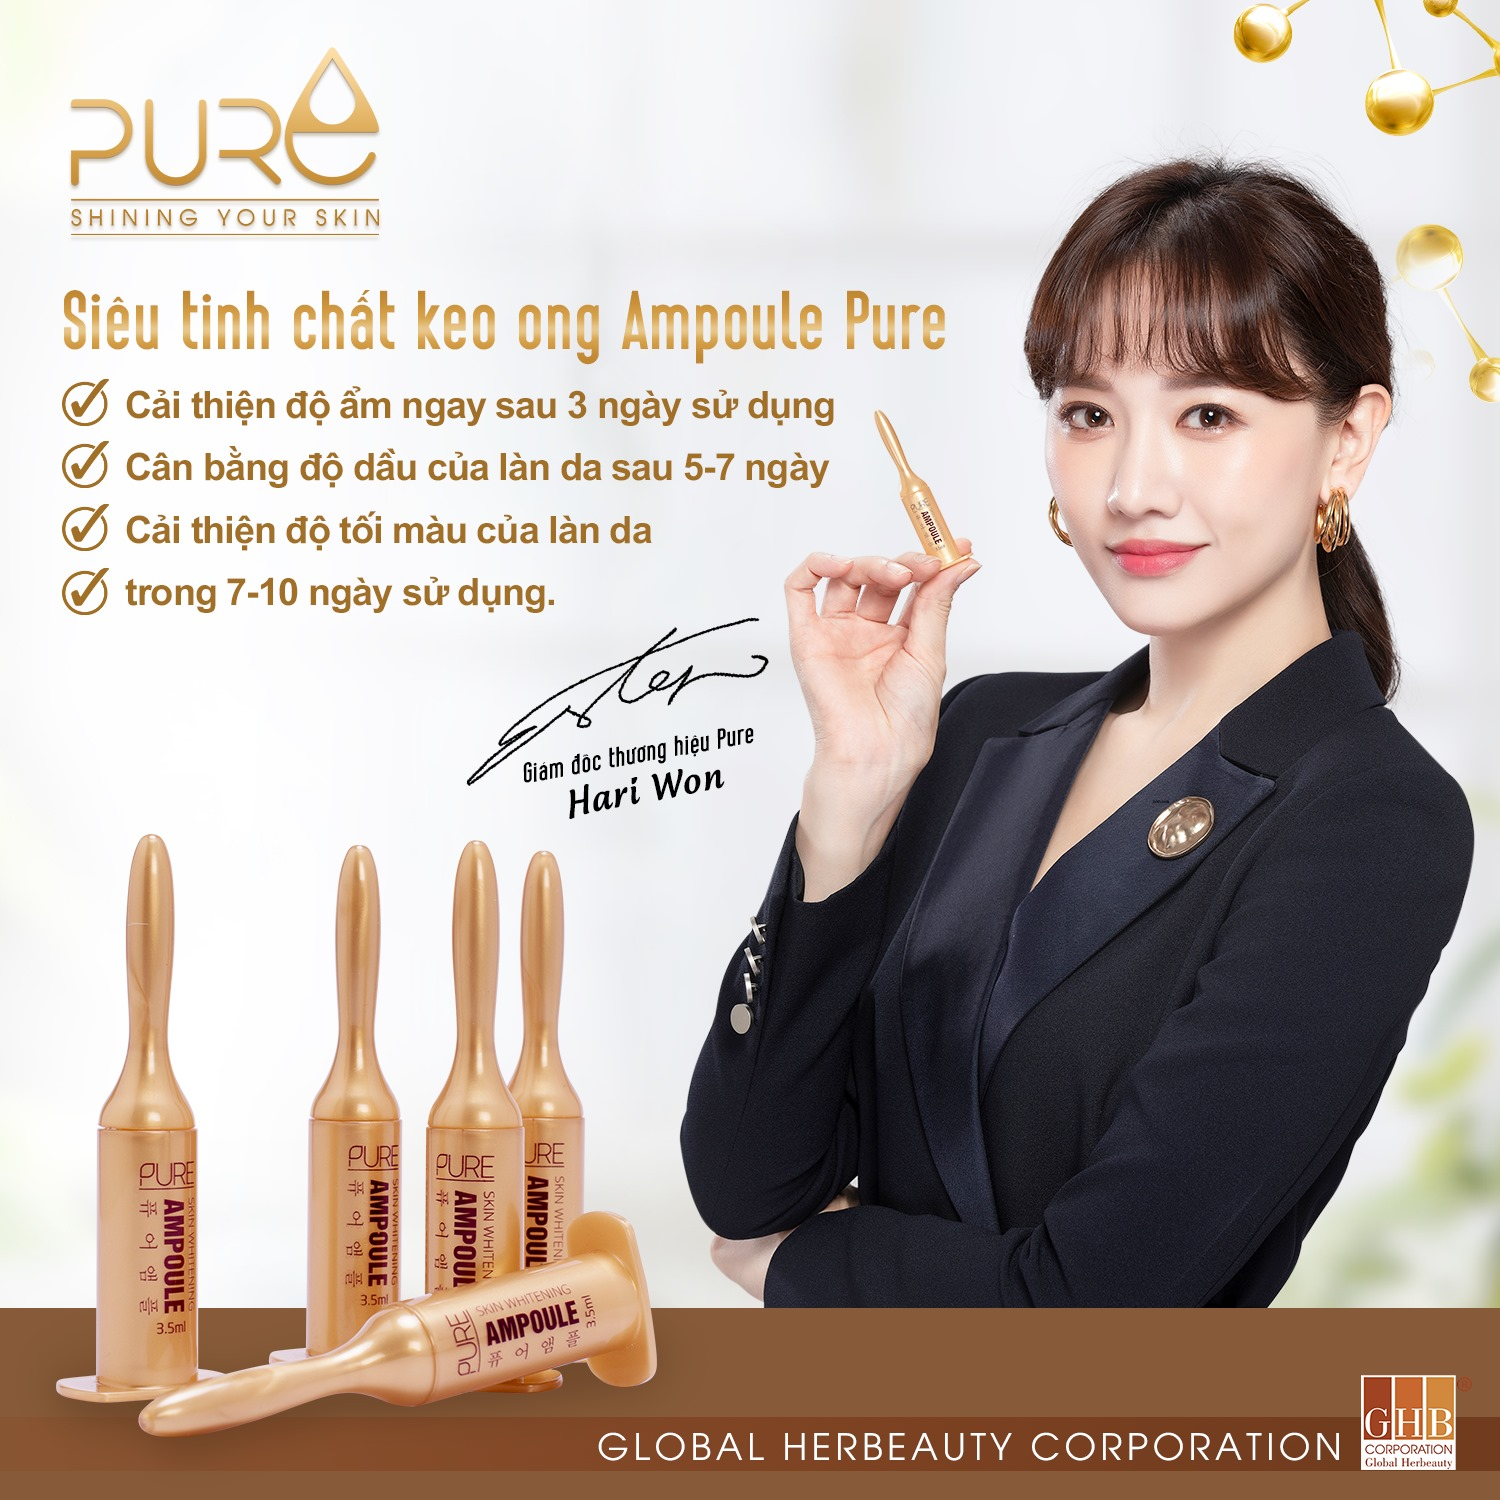 SKIN WHITENING PURE AMPOULE